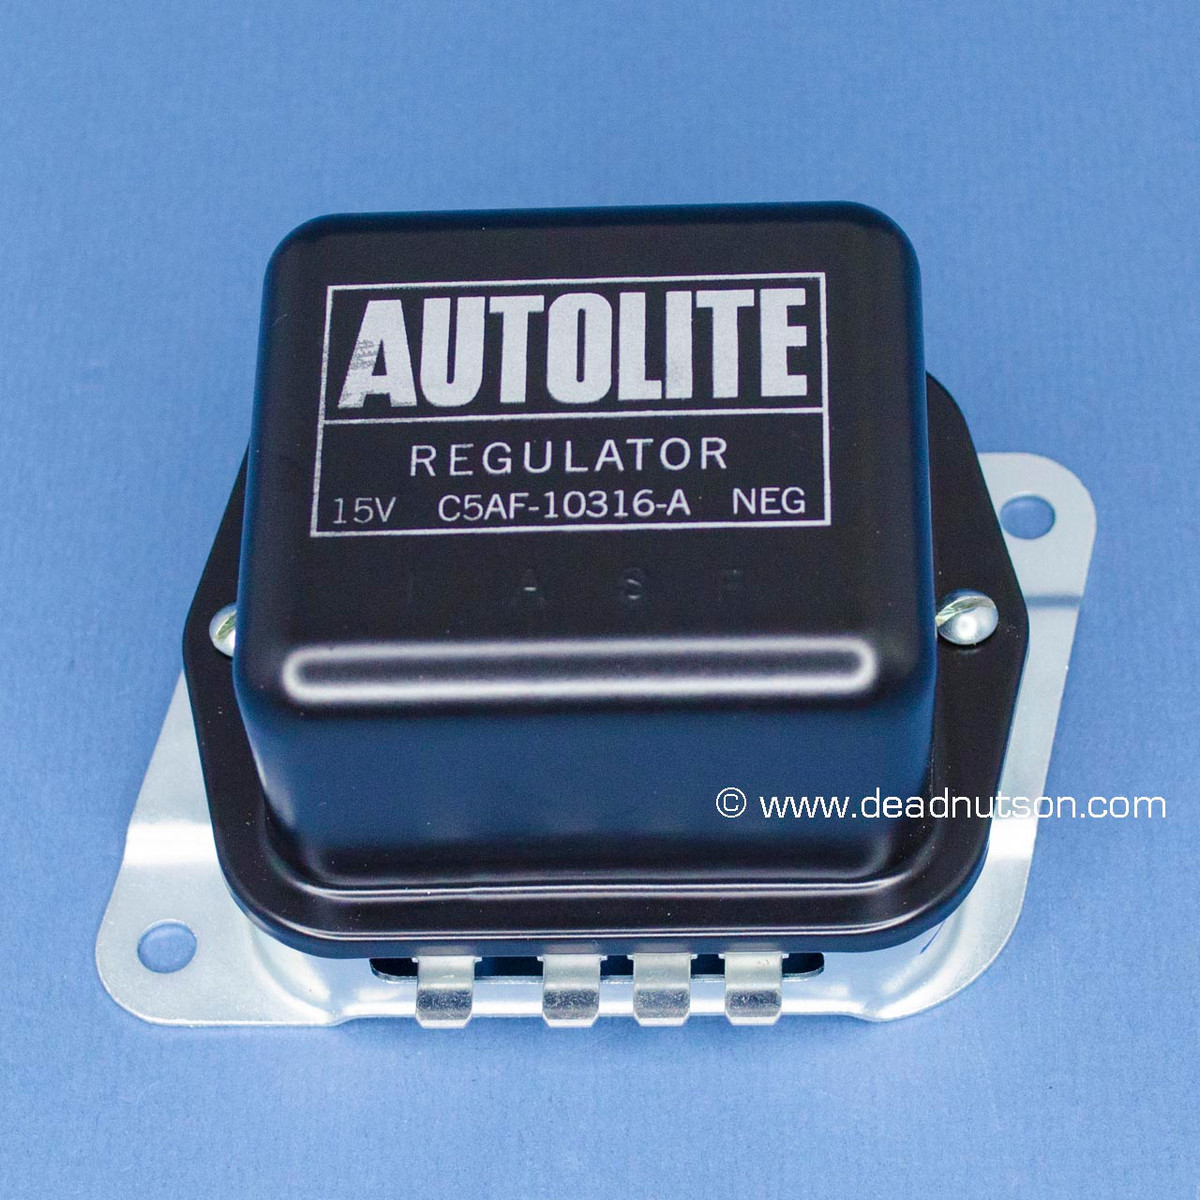 1965 Ford Mustang Voltage Regulator